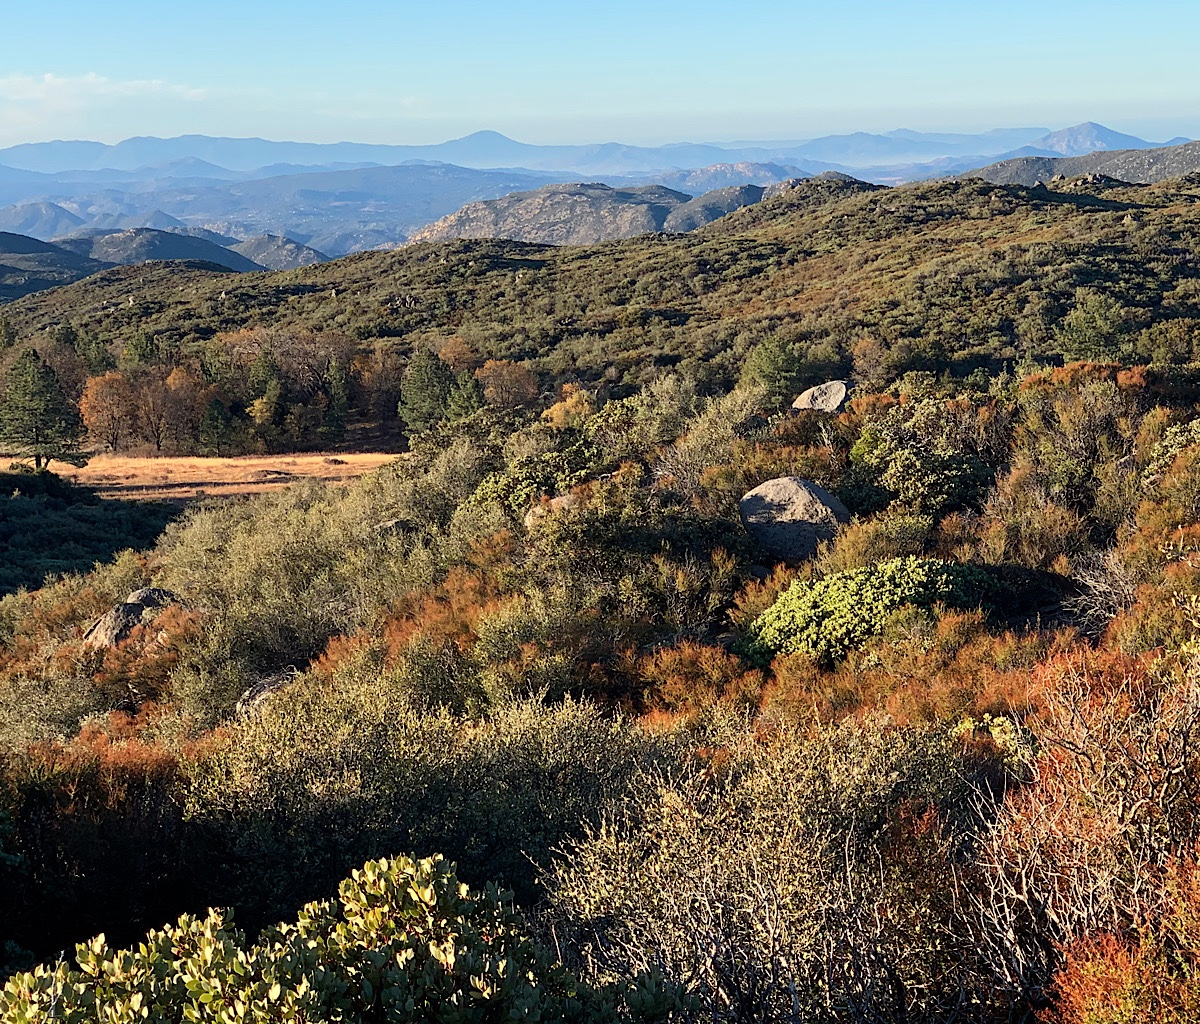 The trail leaves the forest and heads to exposed scrubland. Those distant mountains are in Mexico.